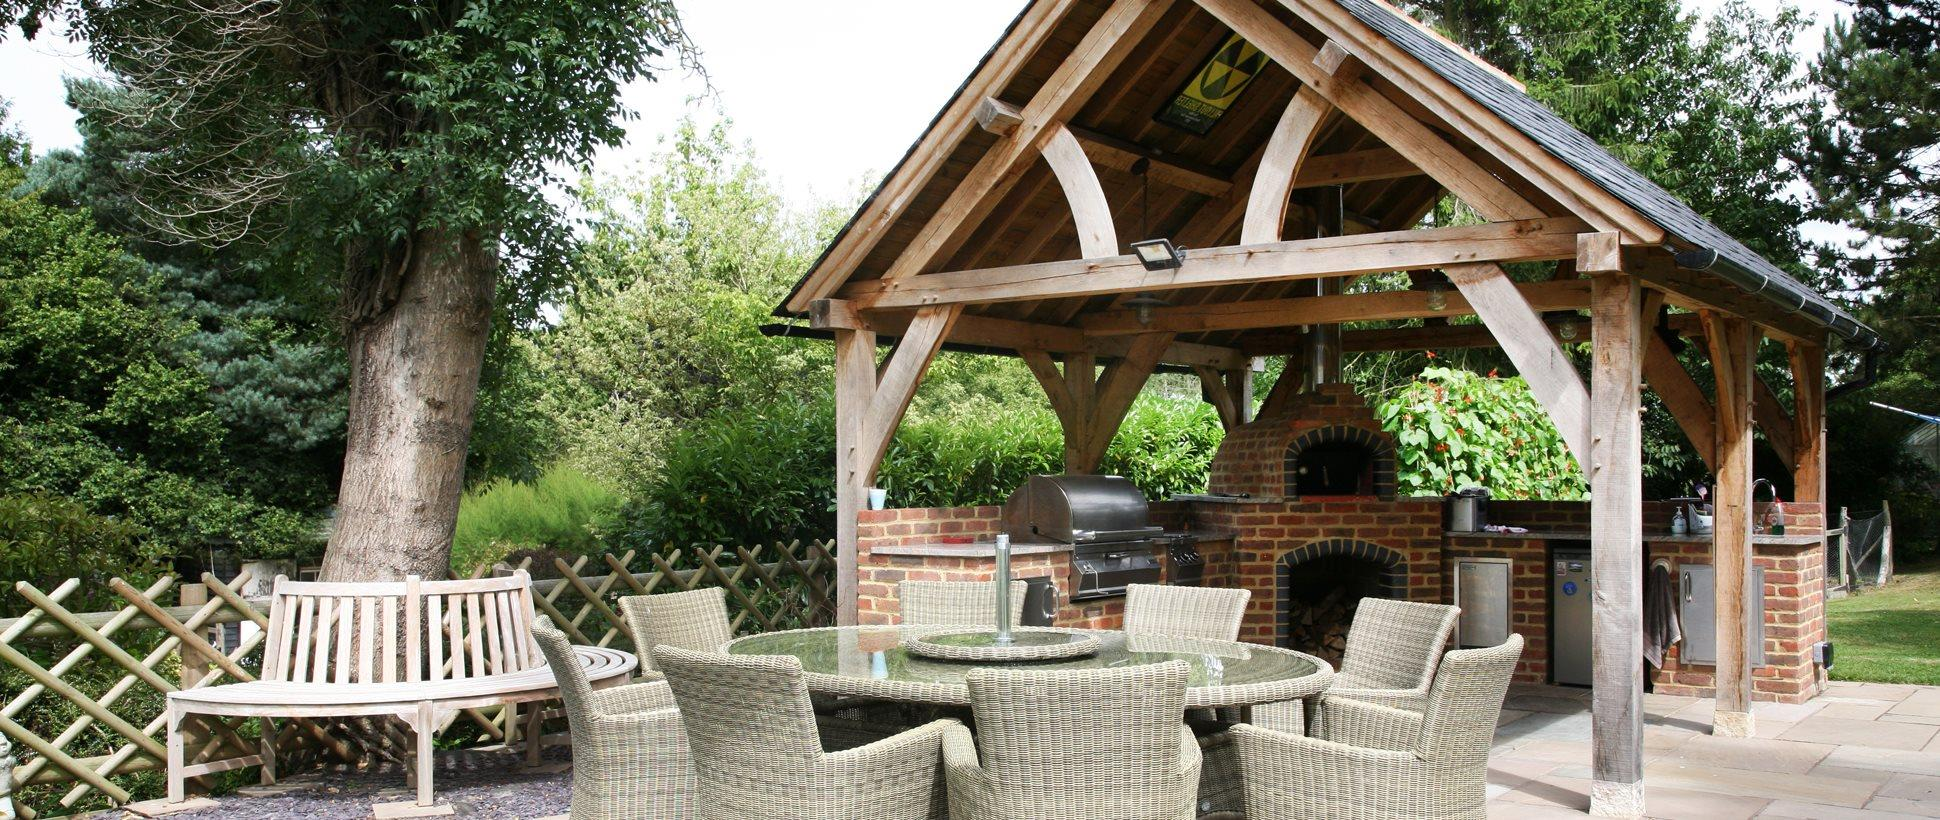 Oak Frame Gazebos Outdoor Living Oak Designs Co